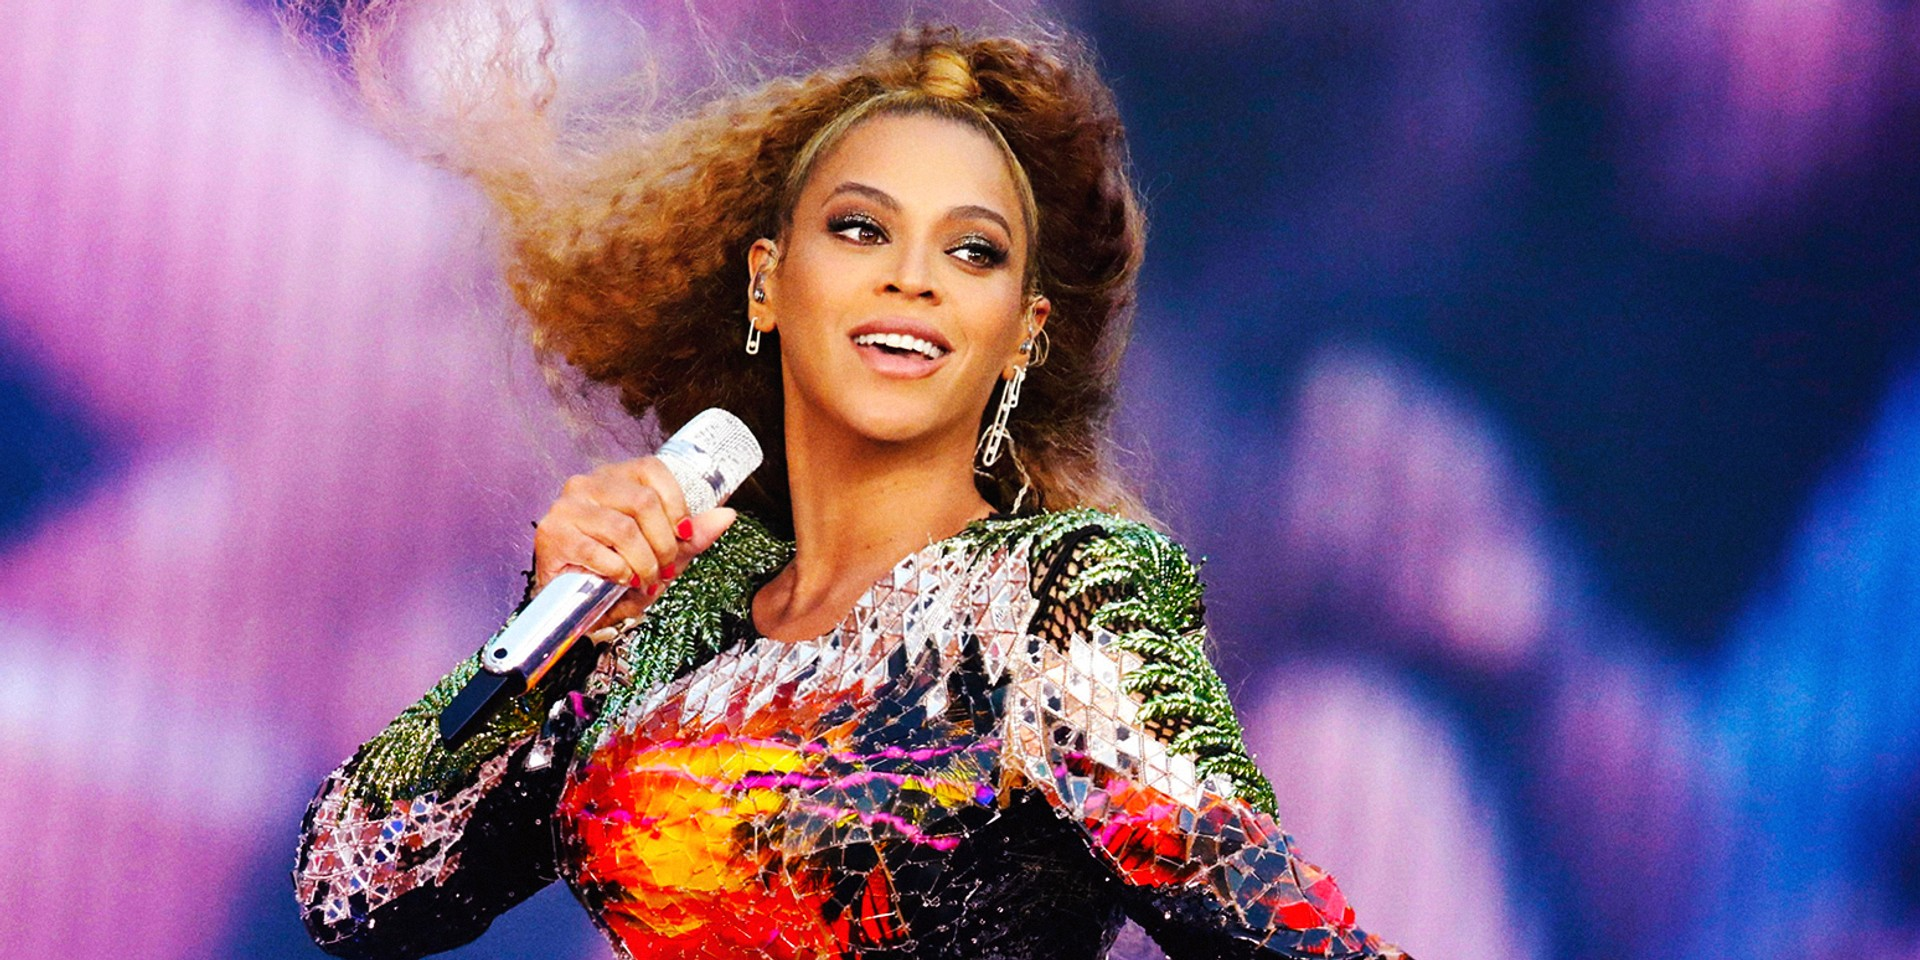 Beyoncé to work with Netflix on more specials, reportedly signs $60 million deal